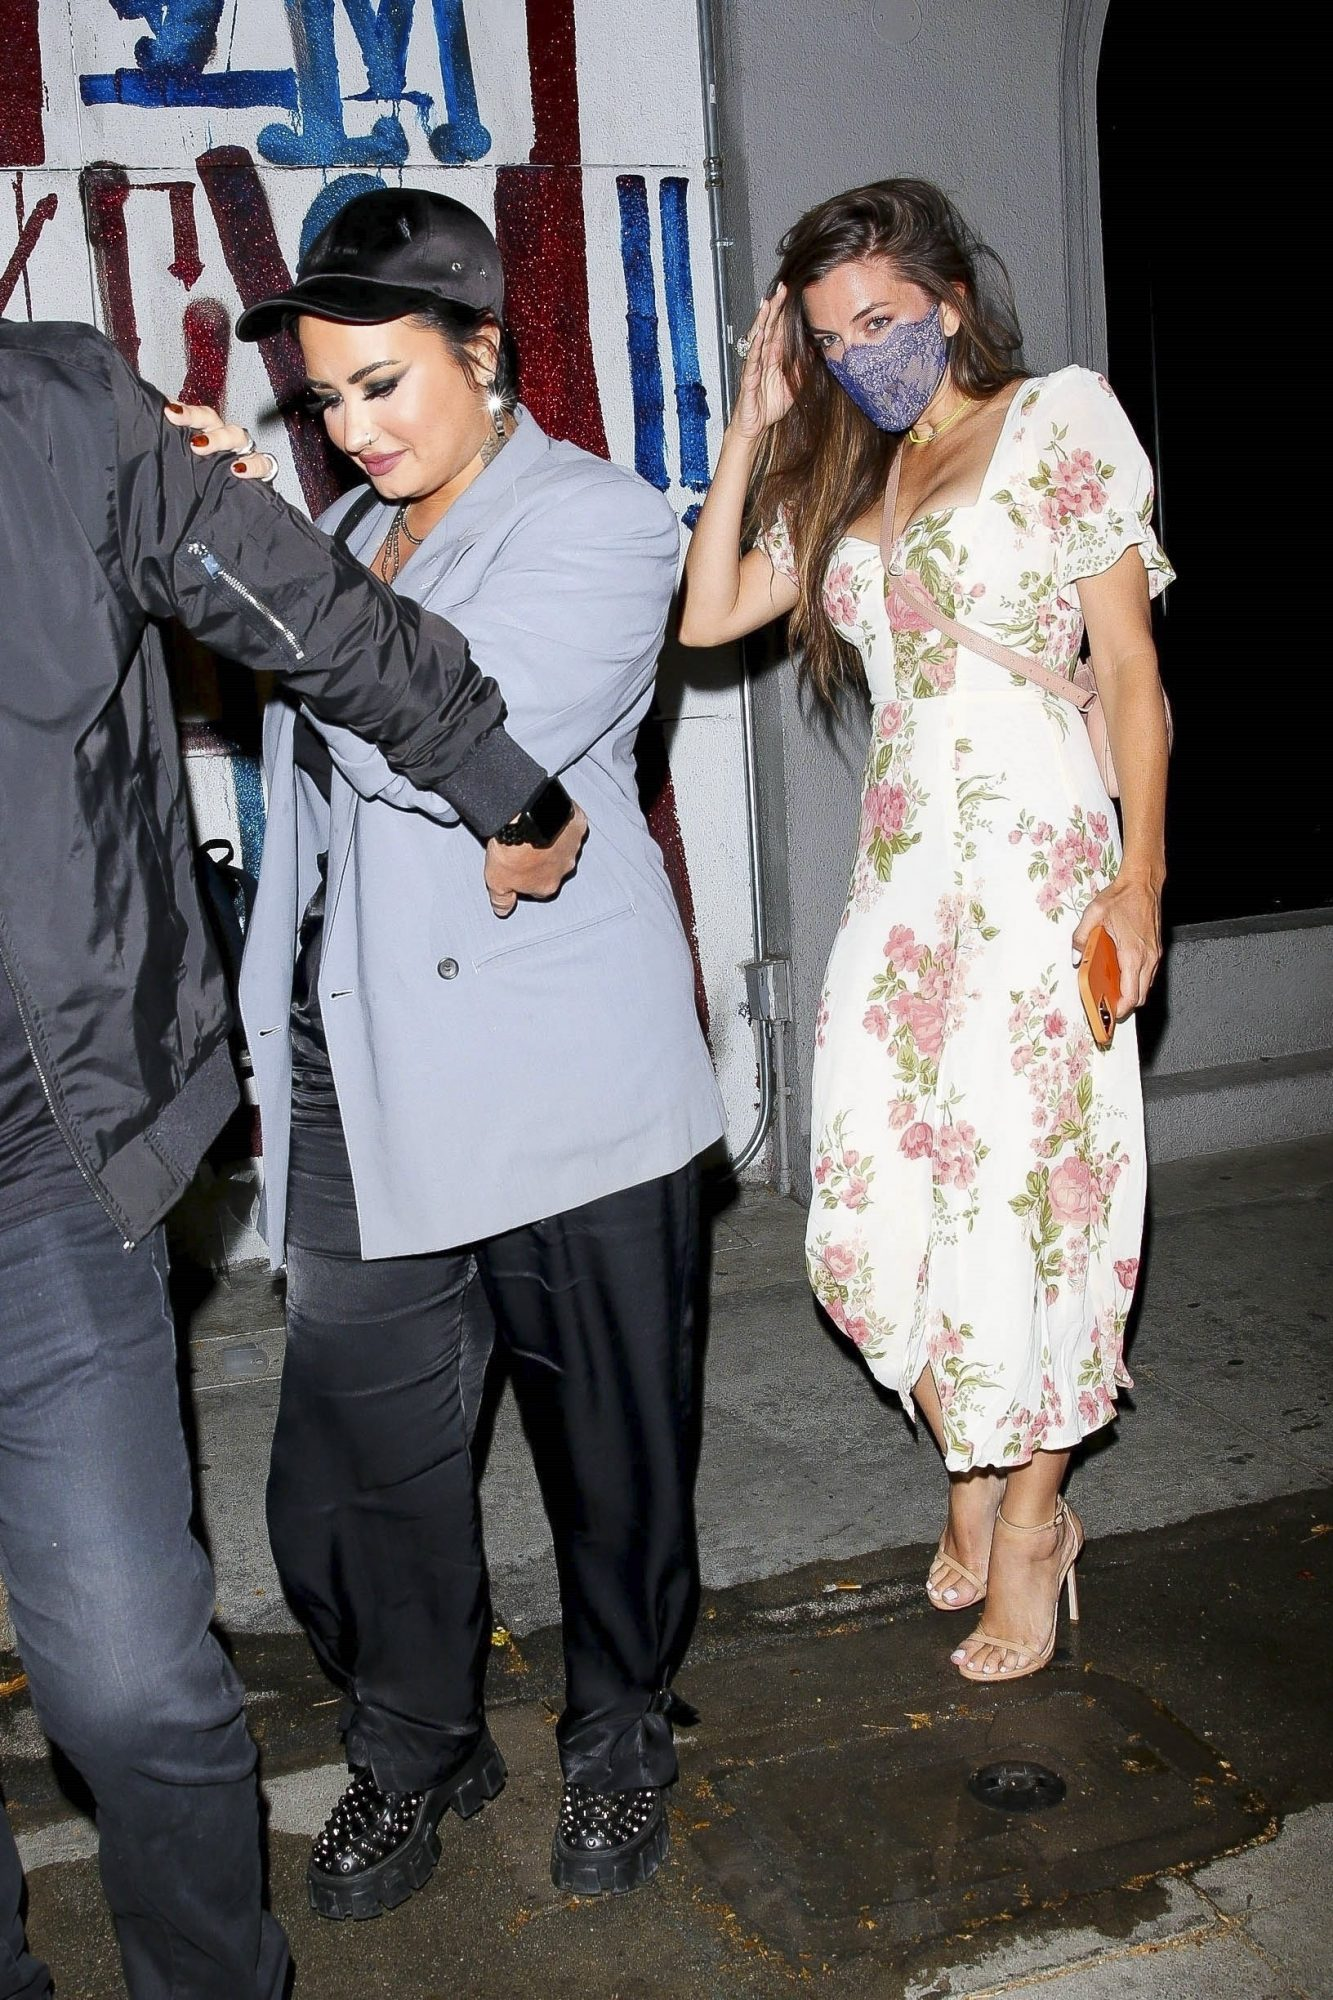 Demi Lovato Steps Out with a Mystery Woman at Craig's